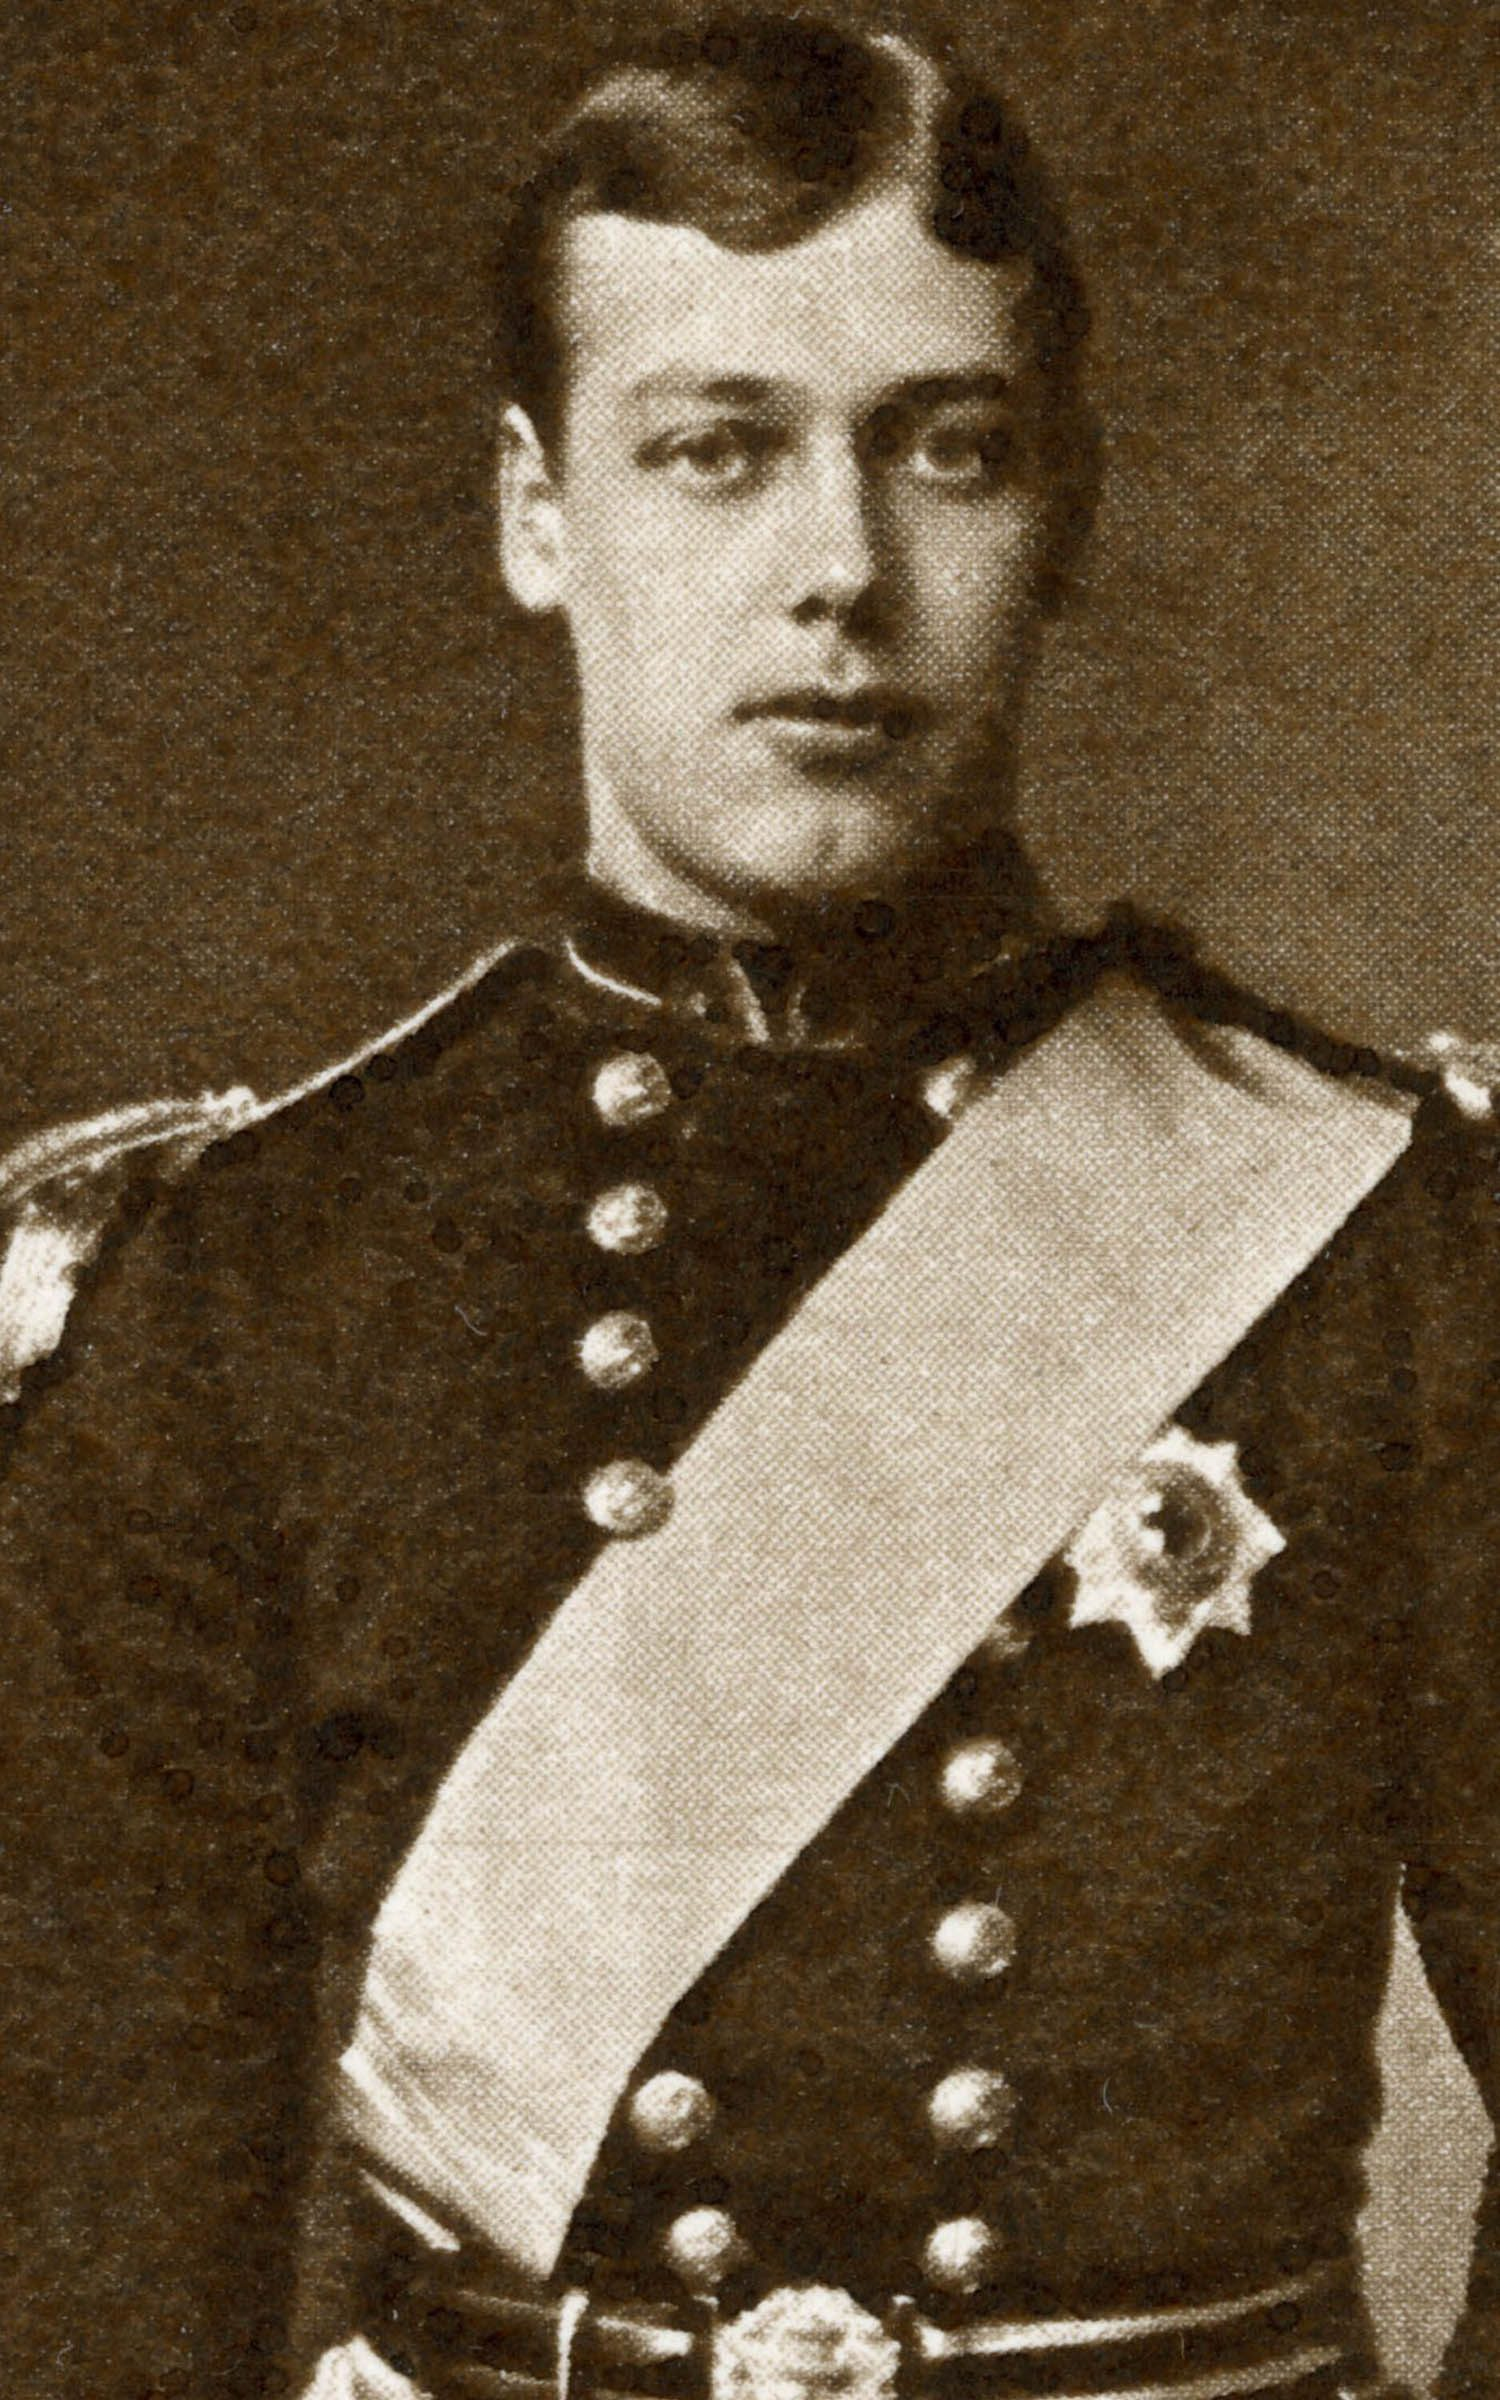 Famille royale : photo de George V, le prince Harry de son époque .